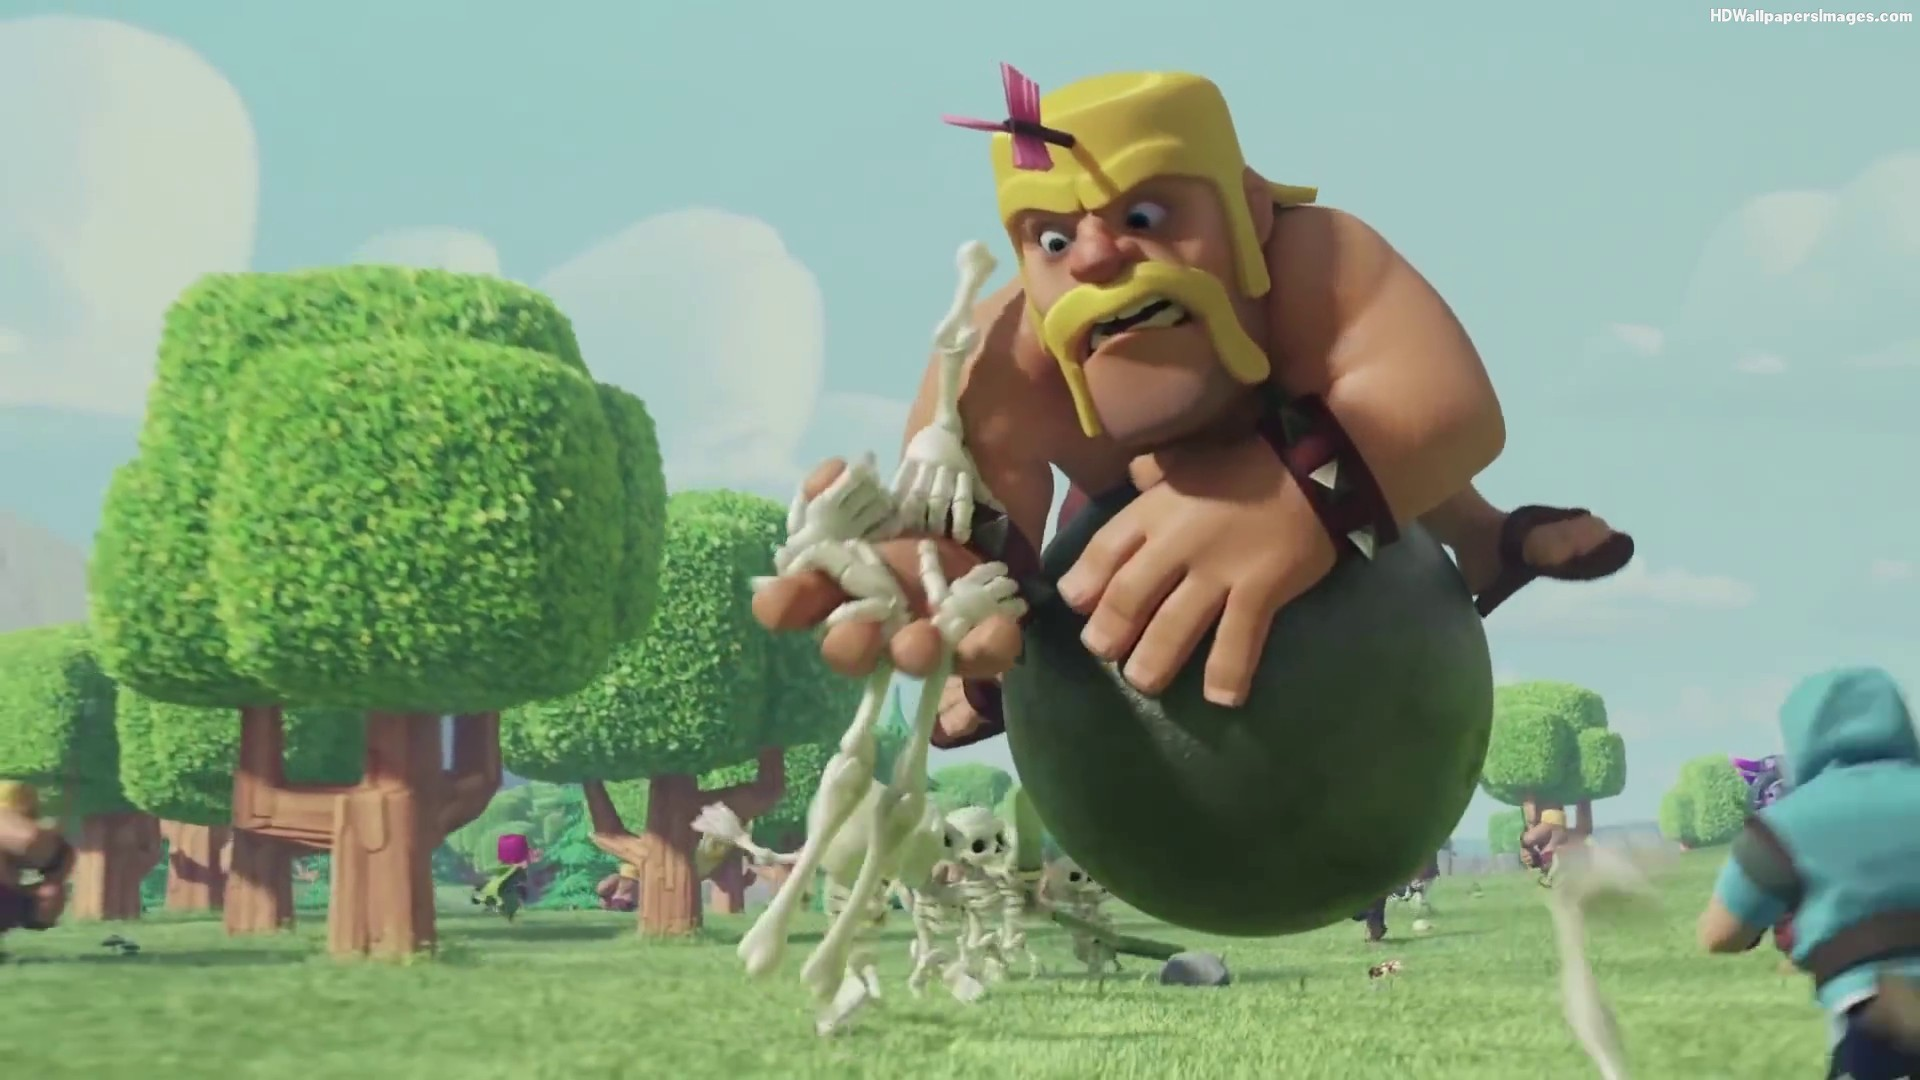 Clash Of Clans Skull Hand Images | HD Wallpapers Images